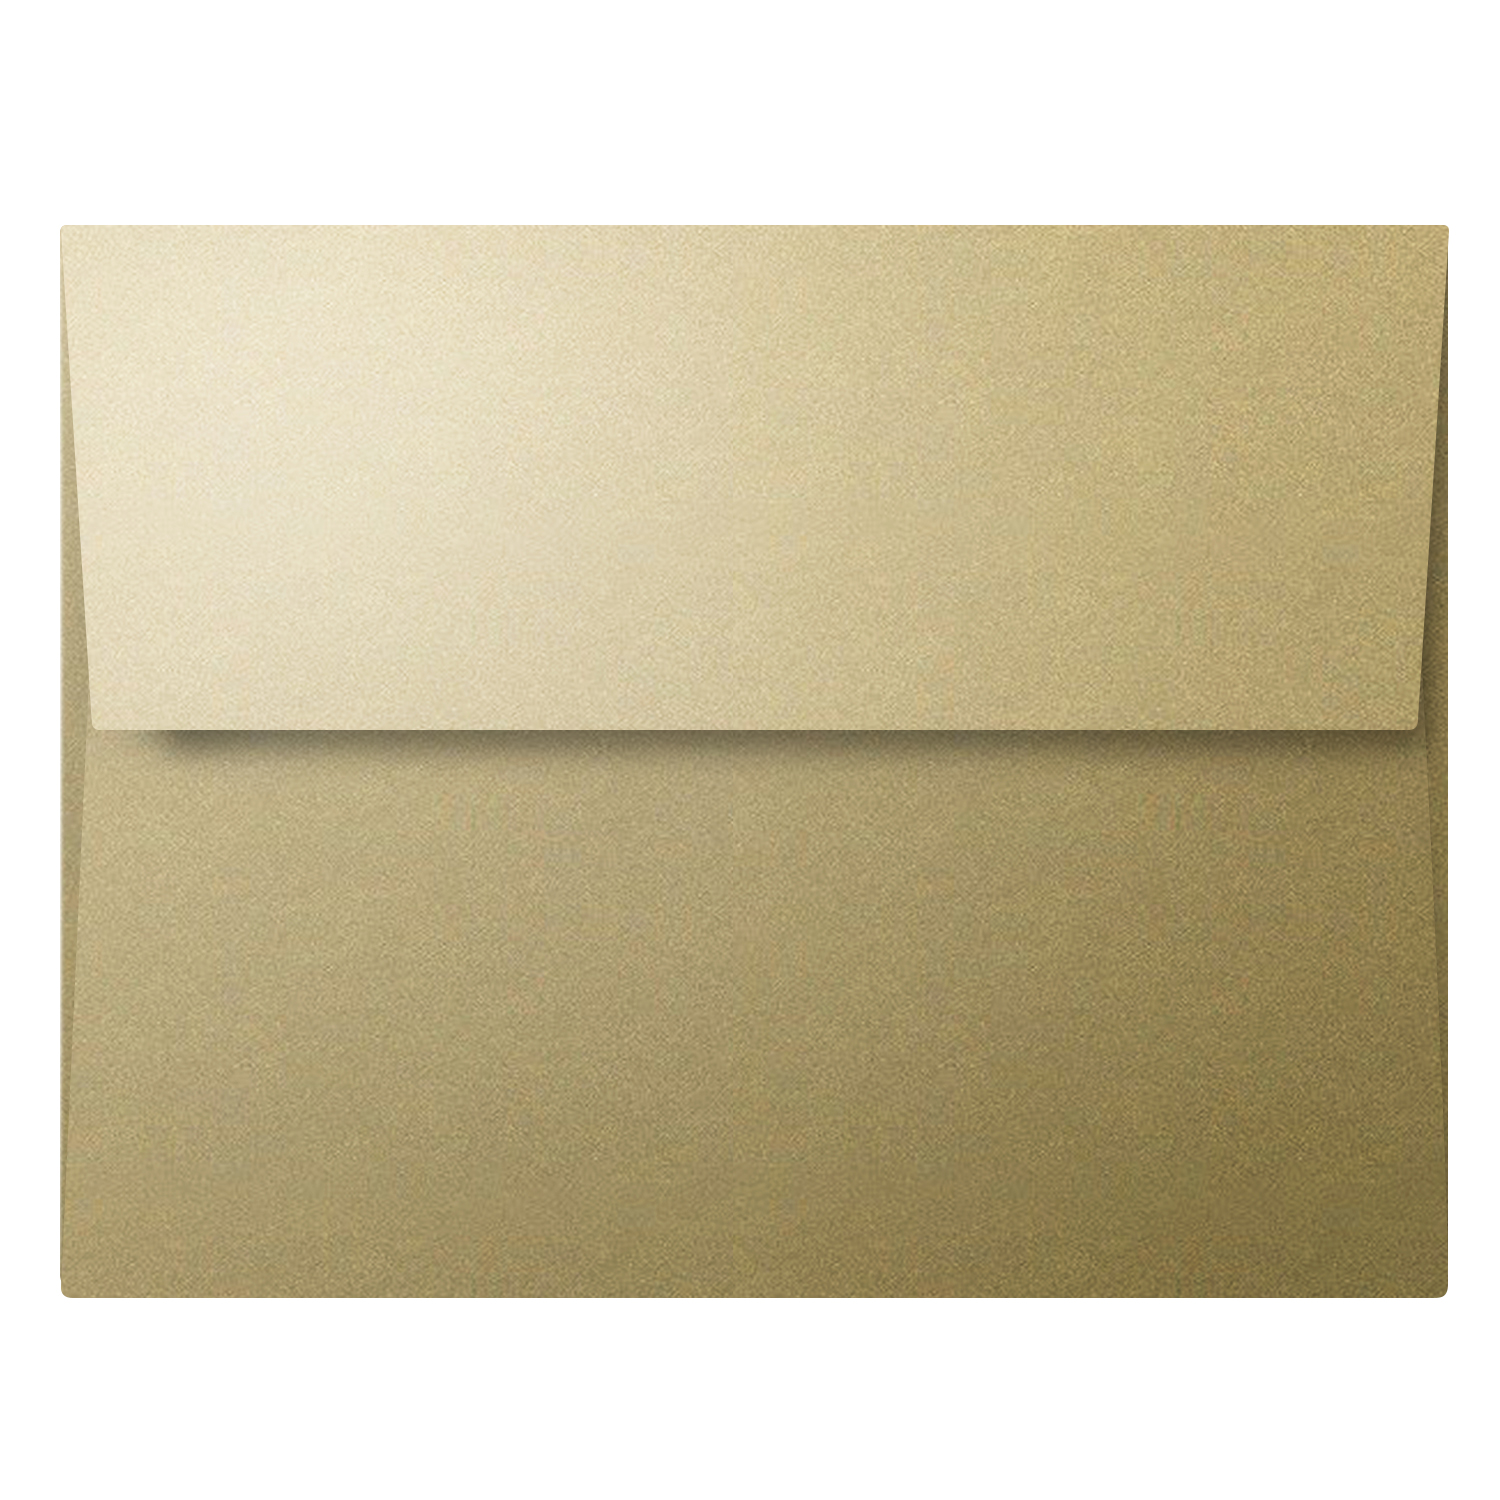 A7 Metallic Envelopes